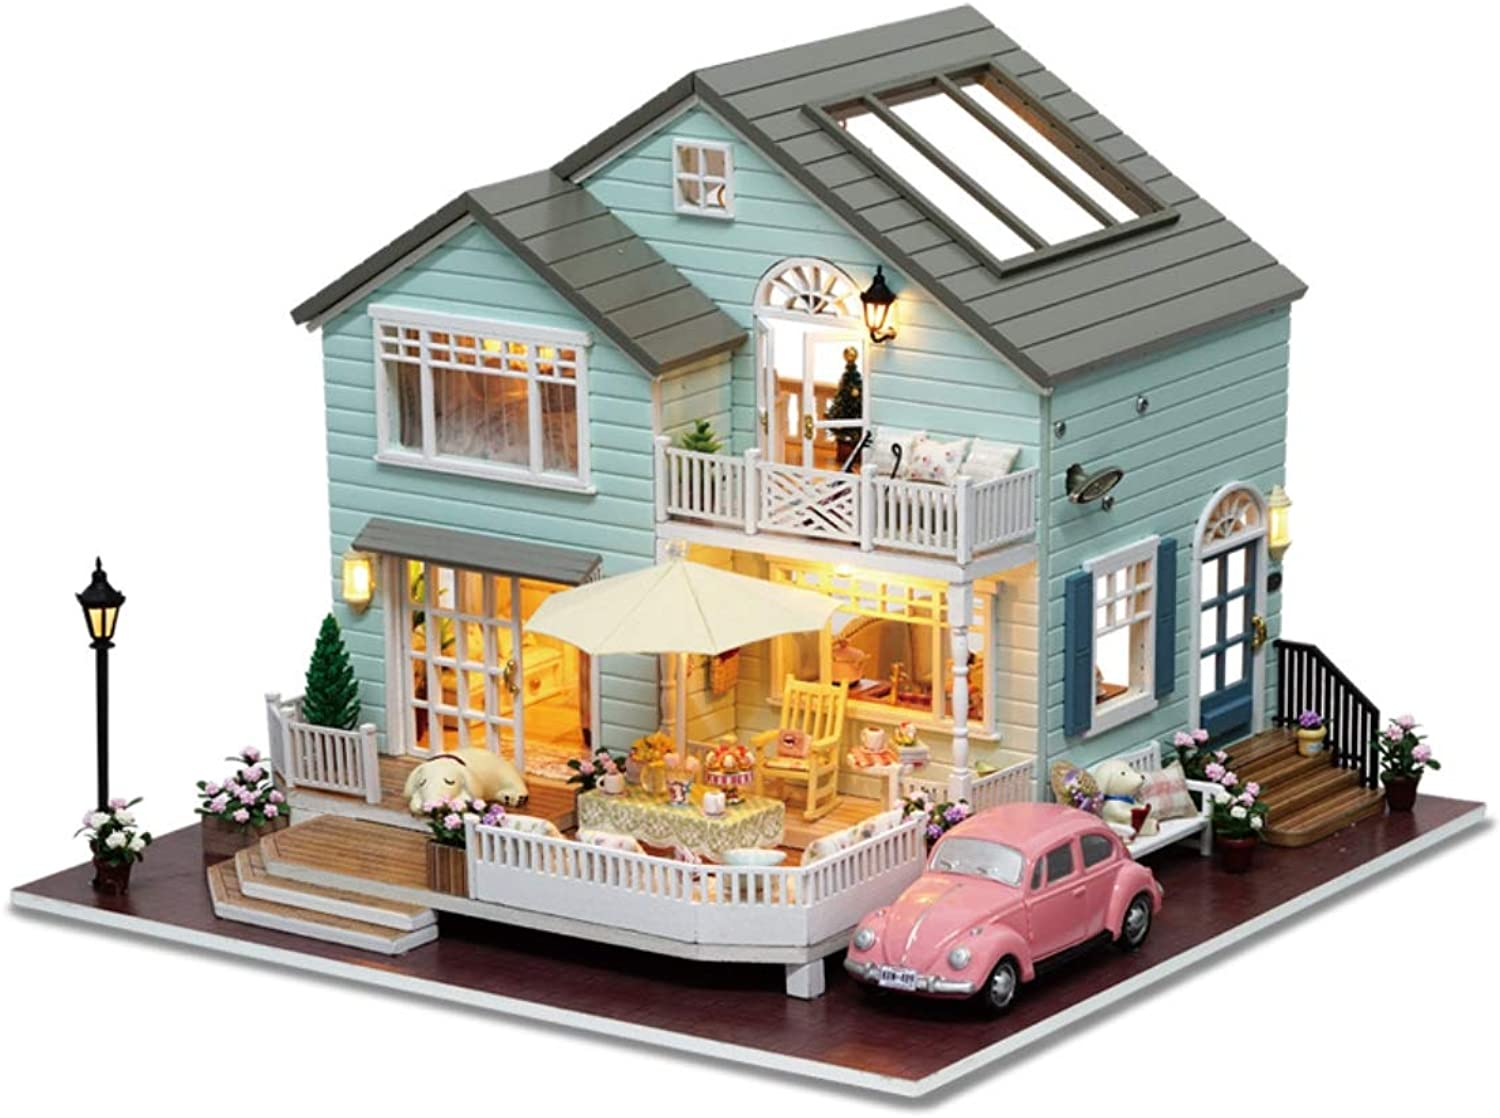 JLA Dollhouse Spielzeug, Hngekorb, Holzzug, Handmade Toy Assembly Puzzle Model, Doll House Toy Girl and Boy, Best Gift